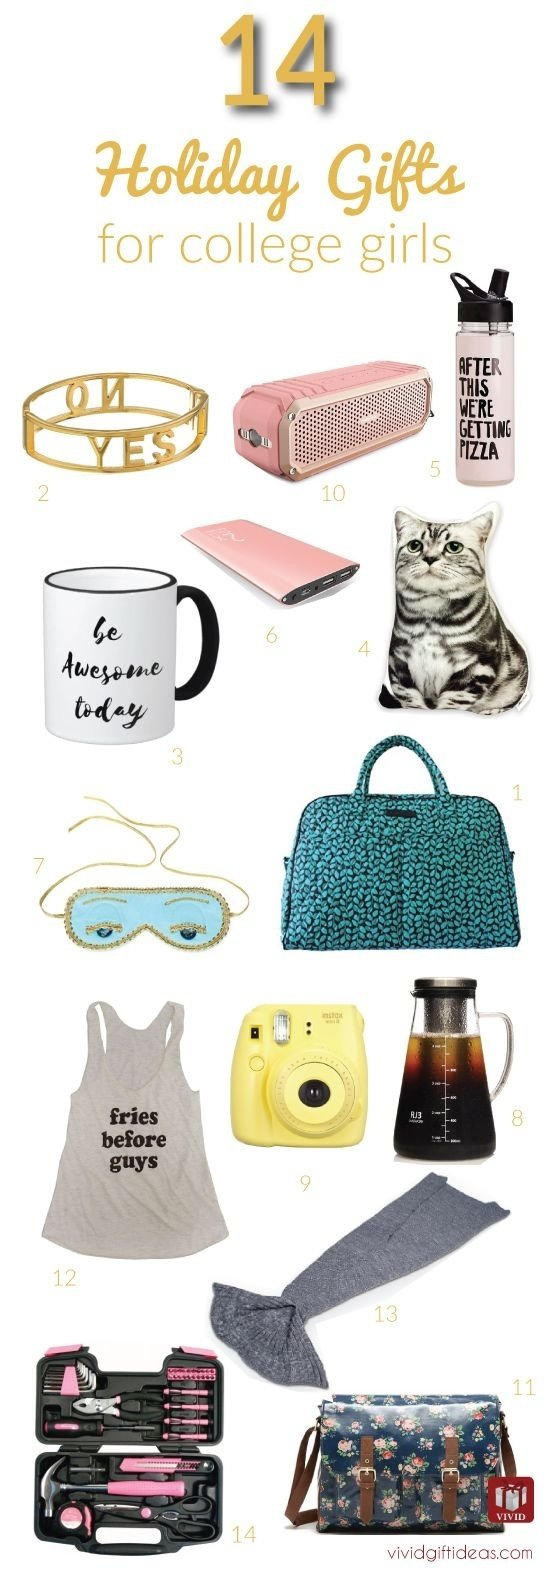 10 Attractive Gift Ideas For College Students 14 great christmas gift ideas for college girls college girls 8 2020